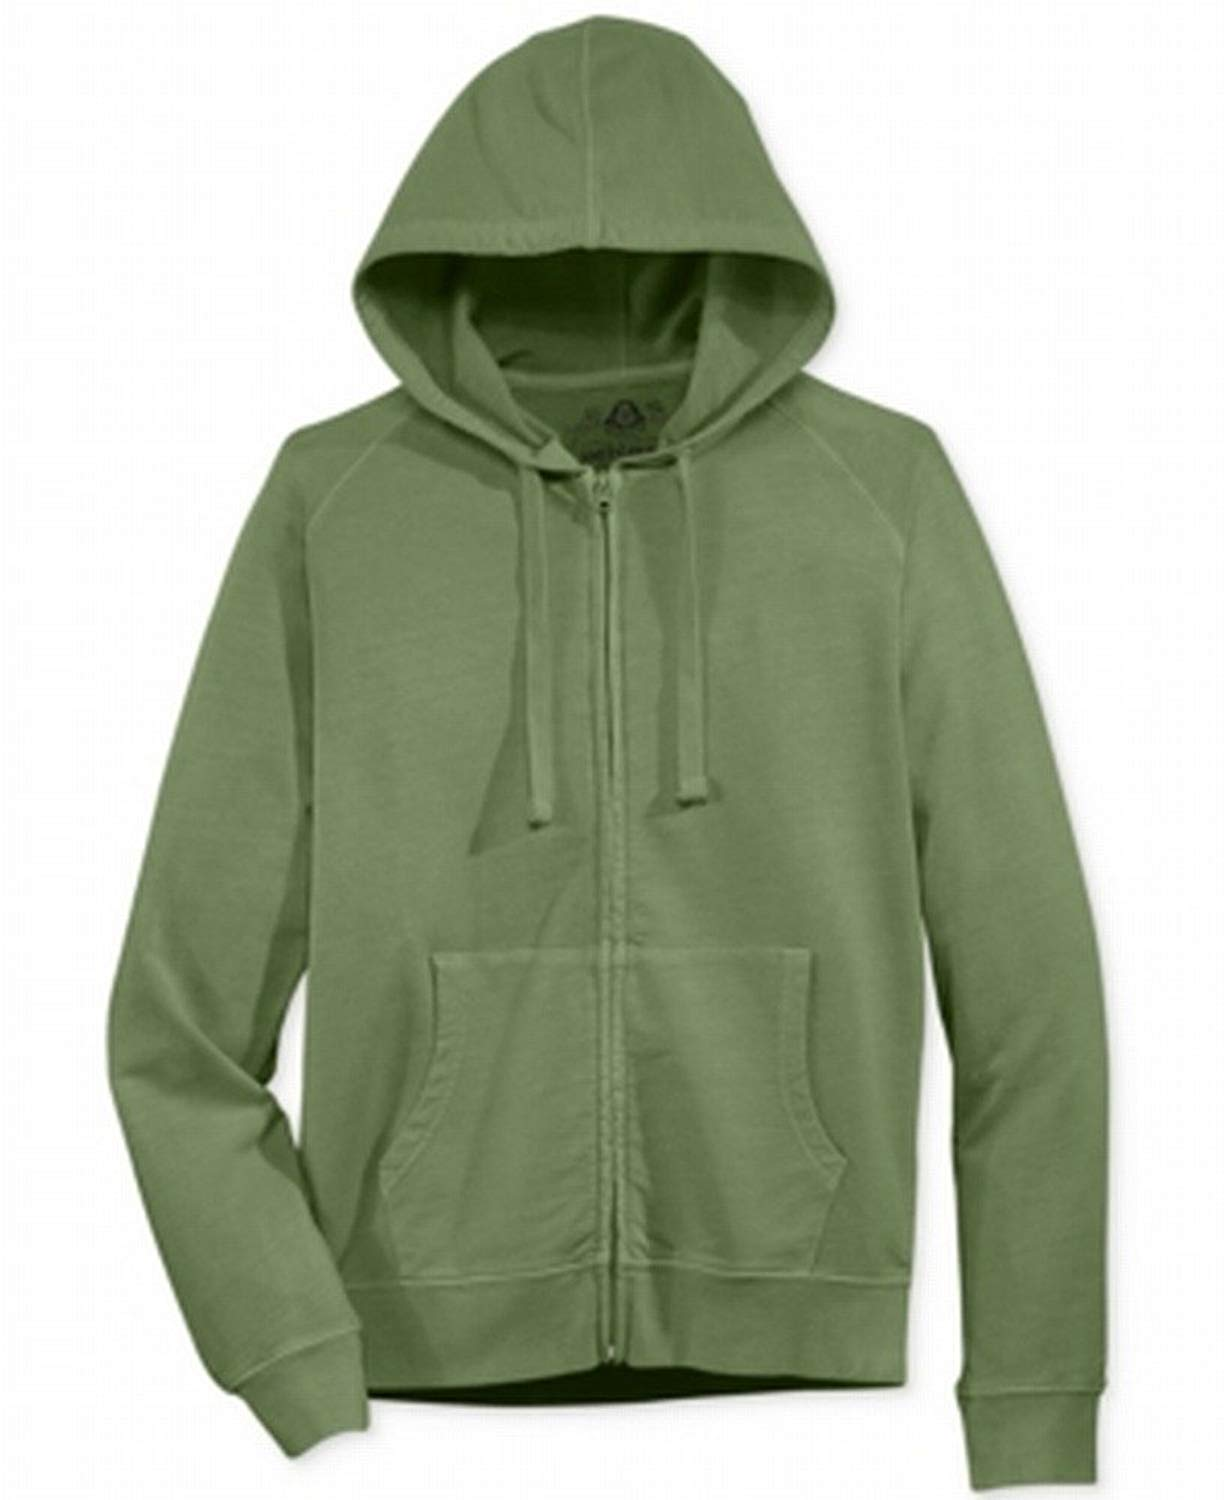 American Rag Sage Mens Drawstring Hooded Sweater